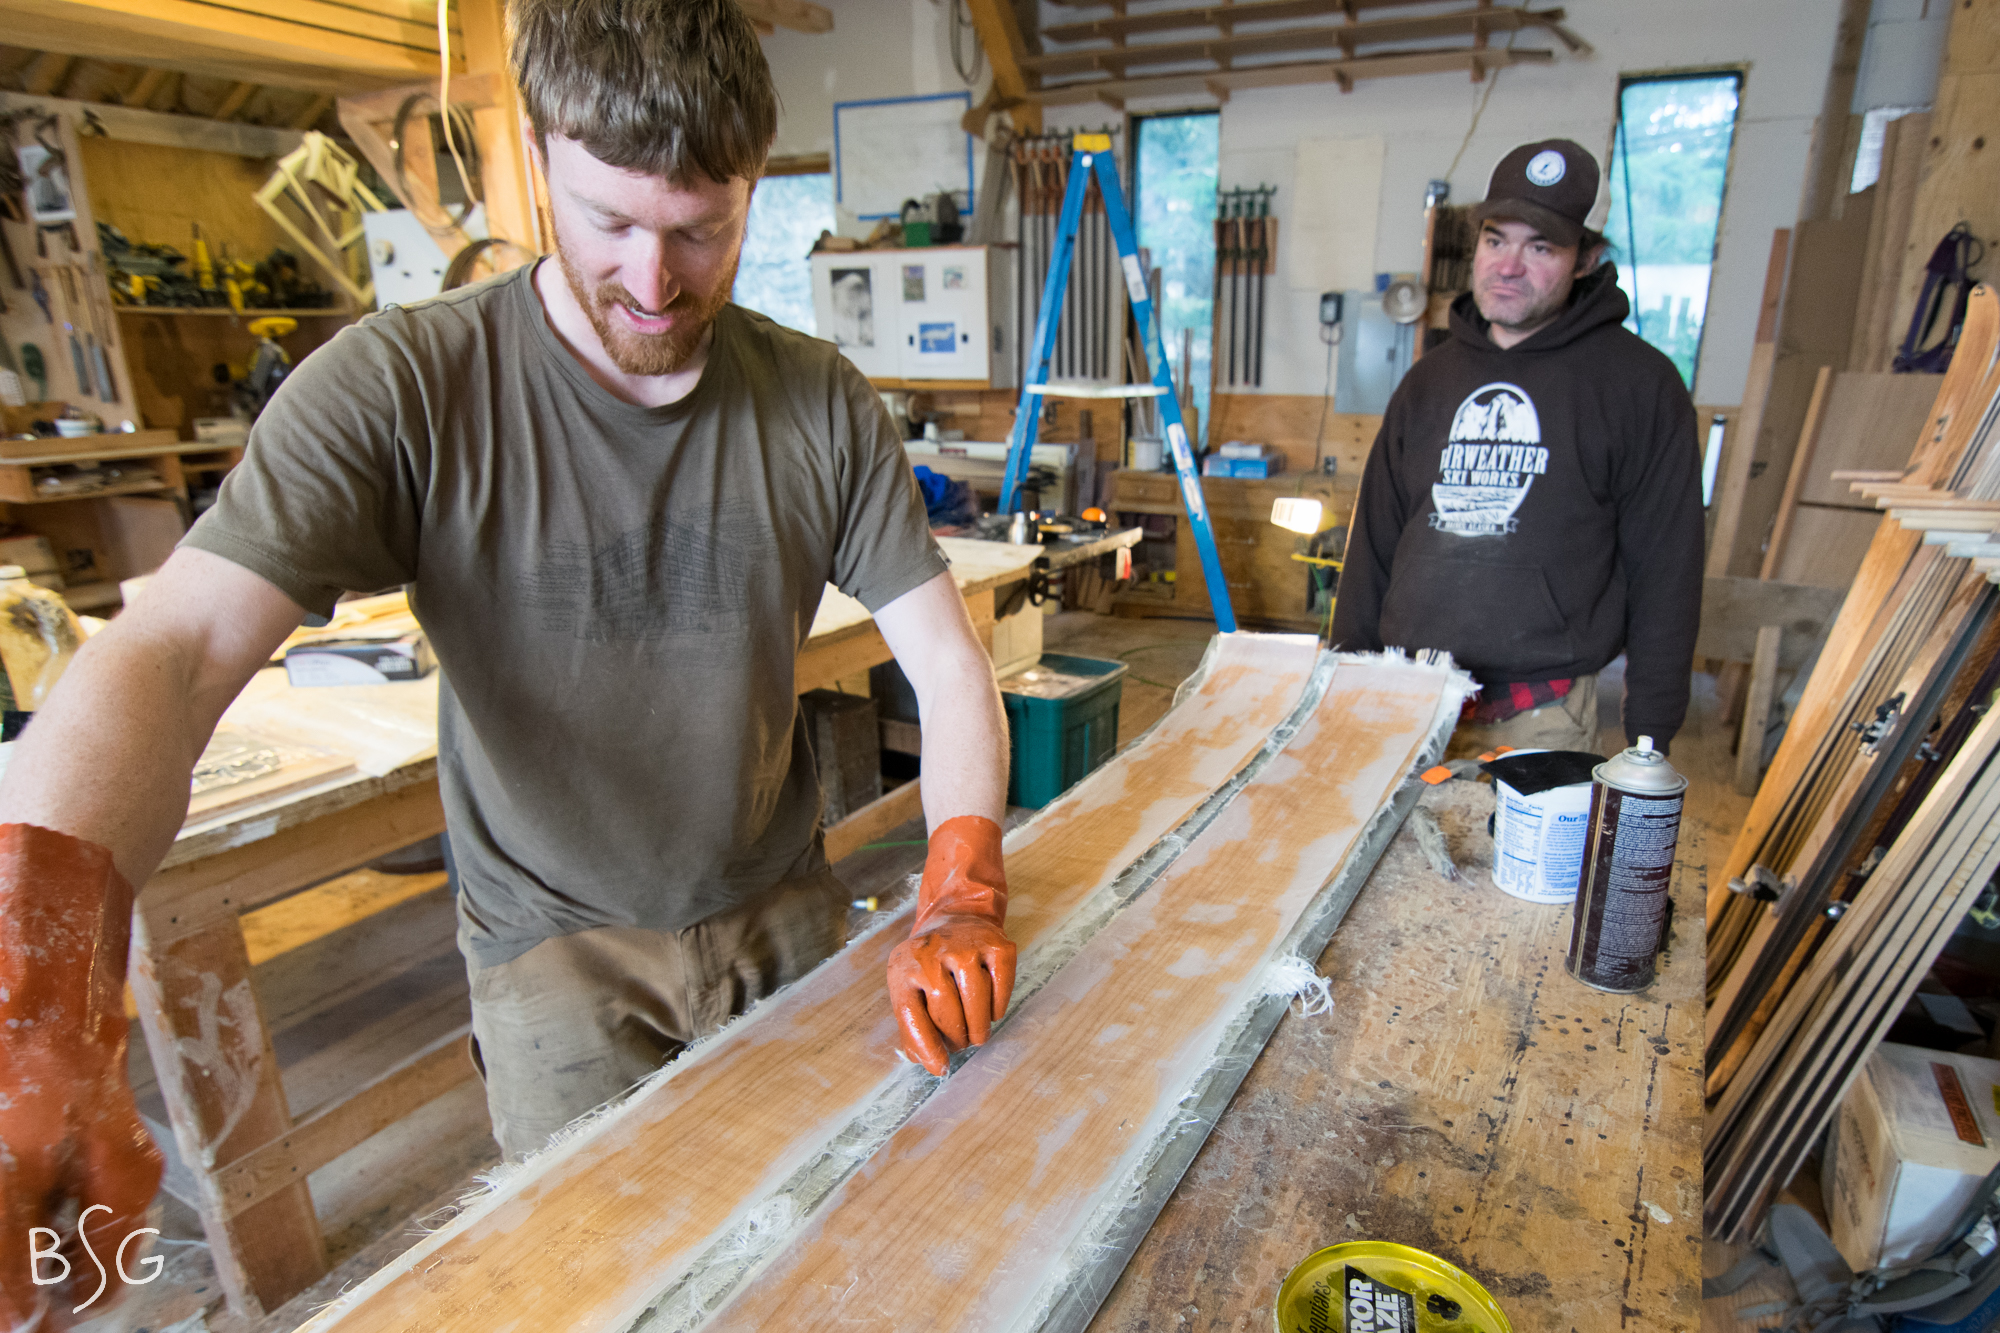 Kraft and Seward add a top sheet before loading the skis into their homemade wooden ski press that will add 180 degrees of heat and up to 60,000 lbs of pressure.